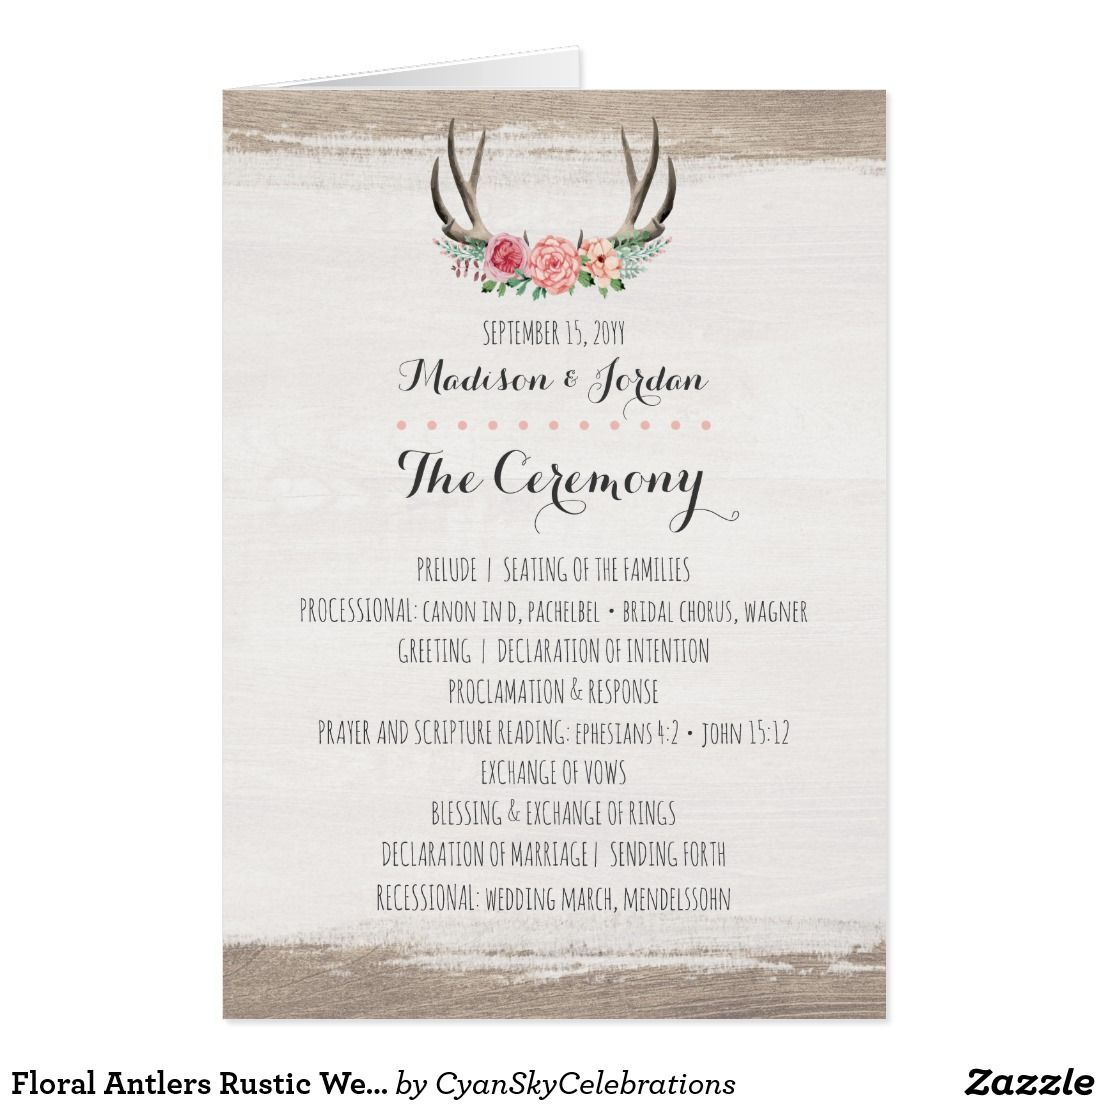 Floral Antlers Rustic Wedding Program Schedule Rustic Wedding